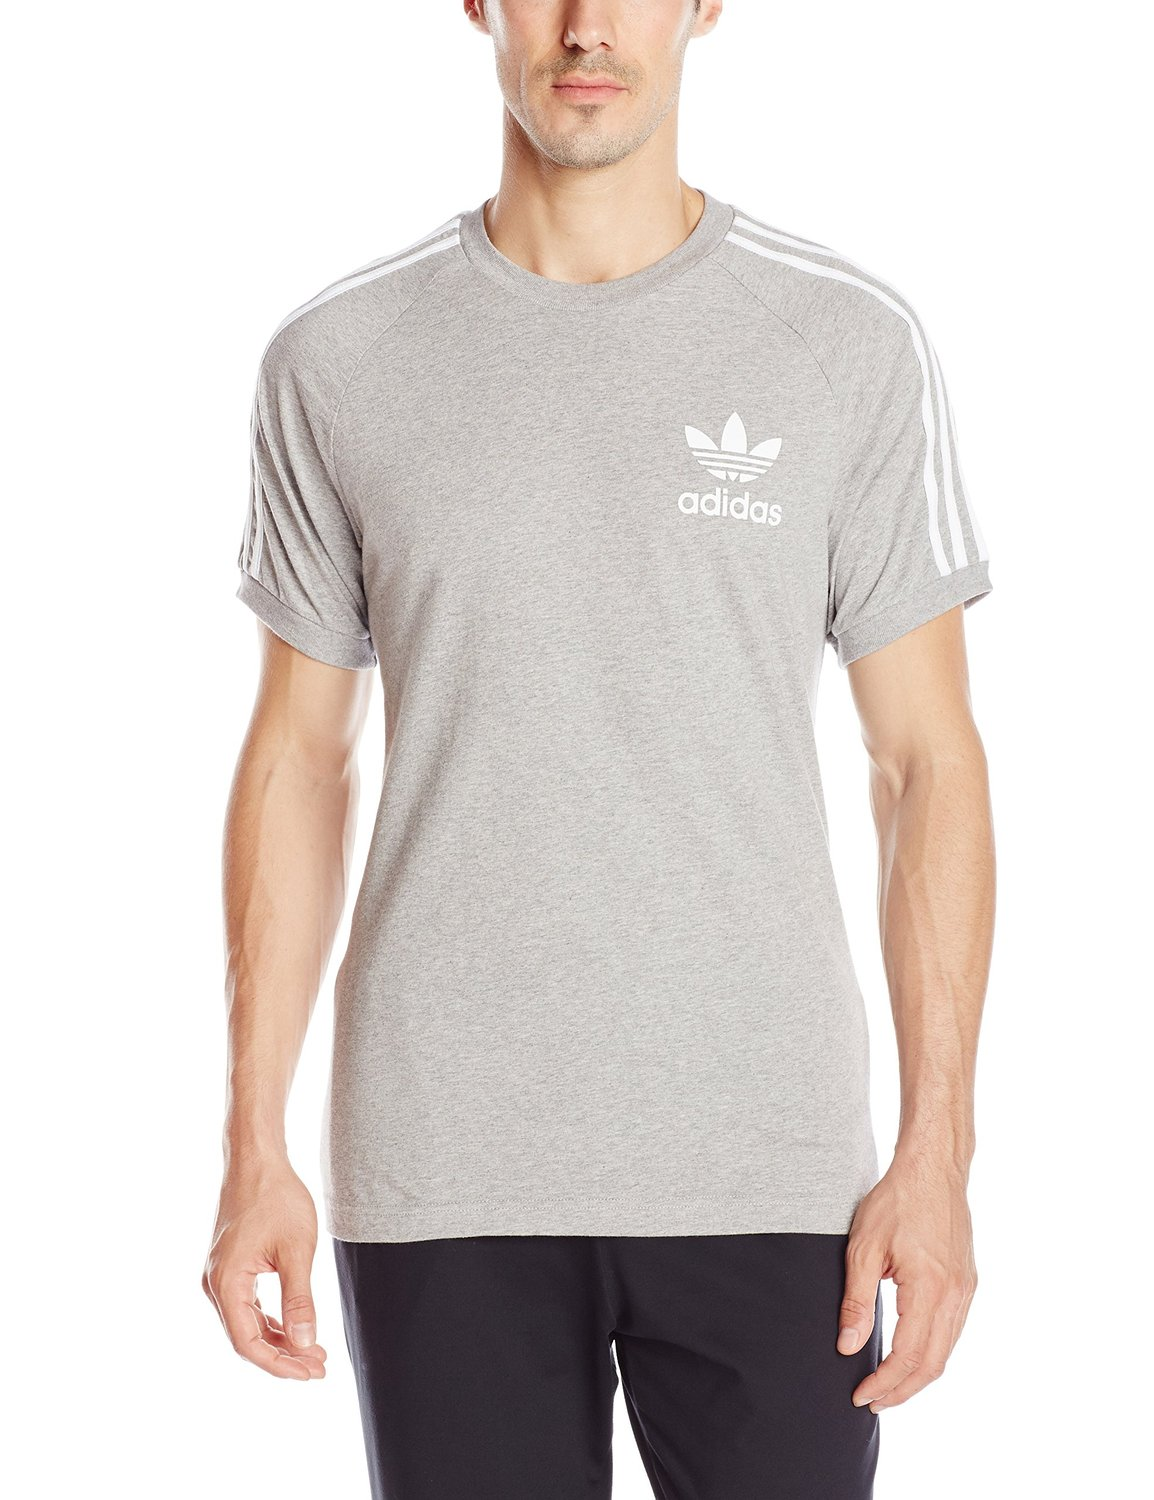 adidas t shirt california amazon